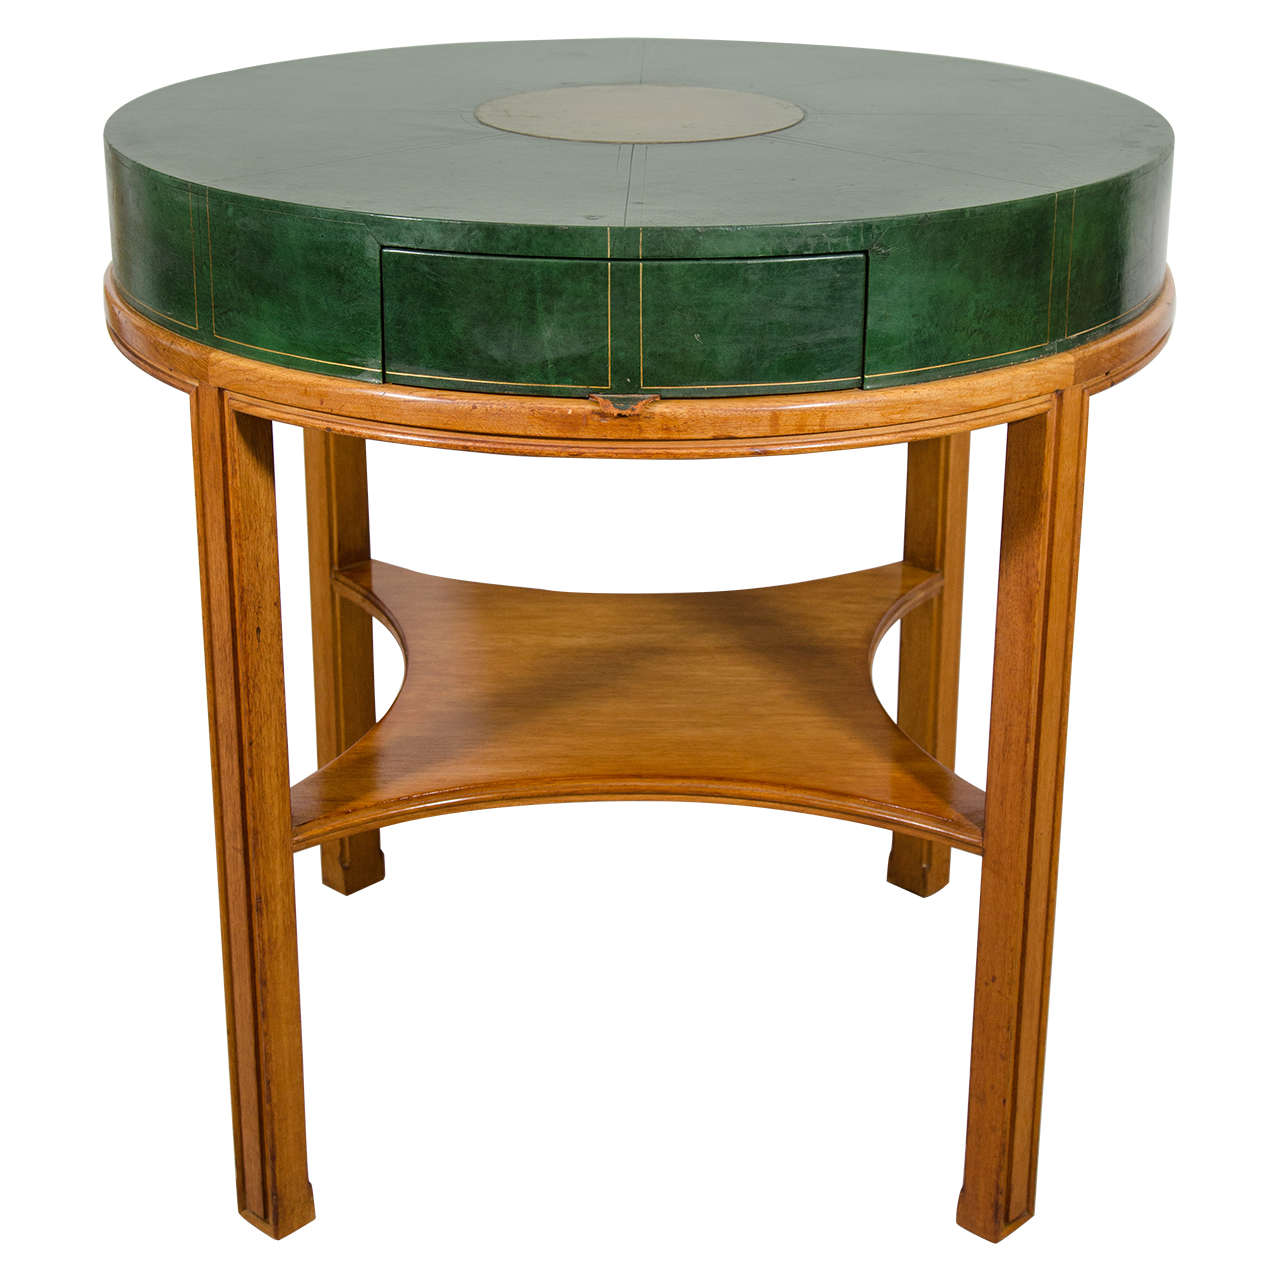 Delicieux Midcentury Tommi Parzinger For Charak Modern, Round Leather Game Table For  Sale